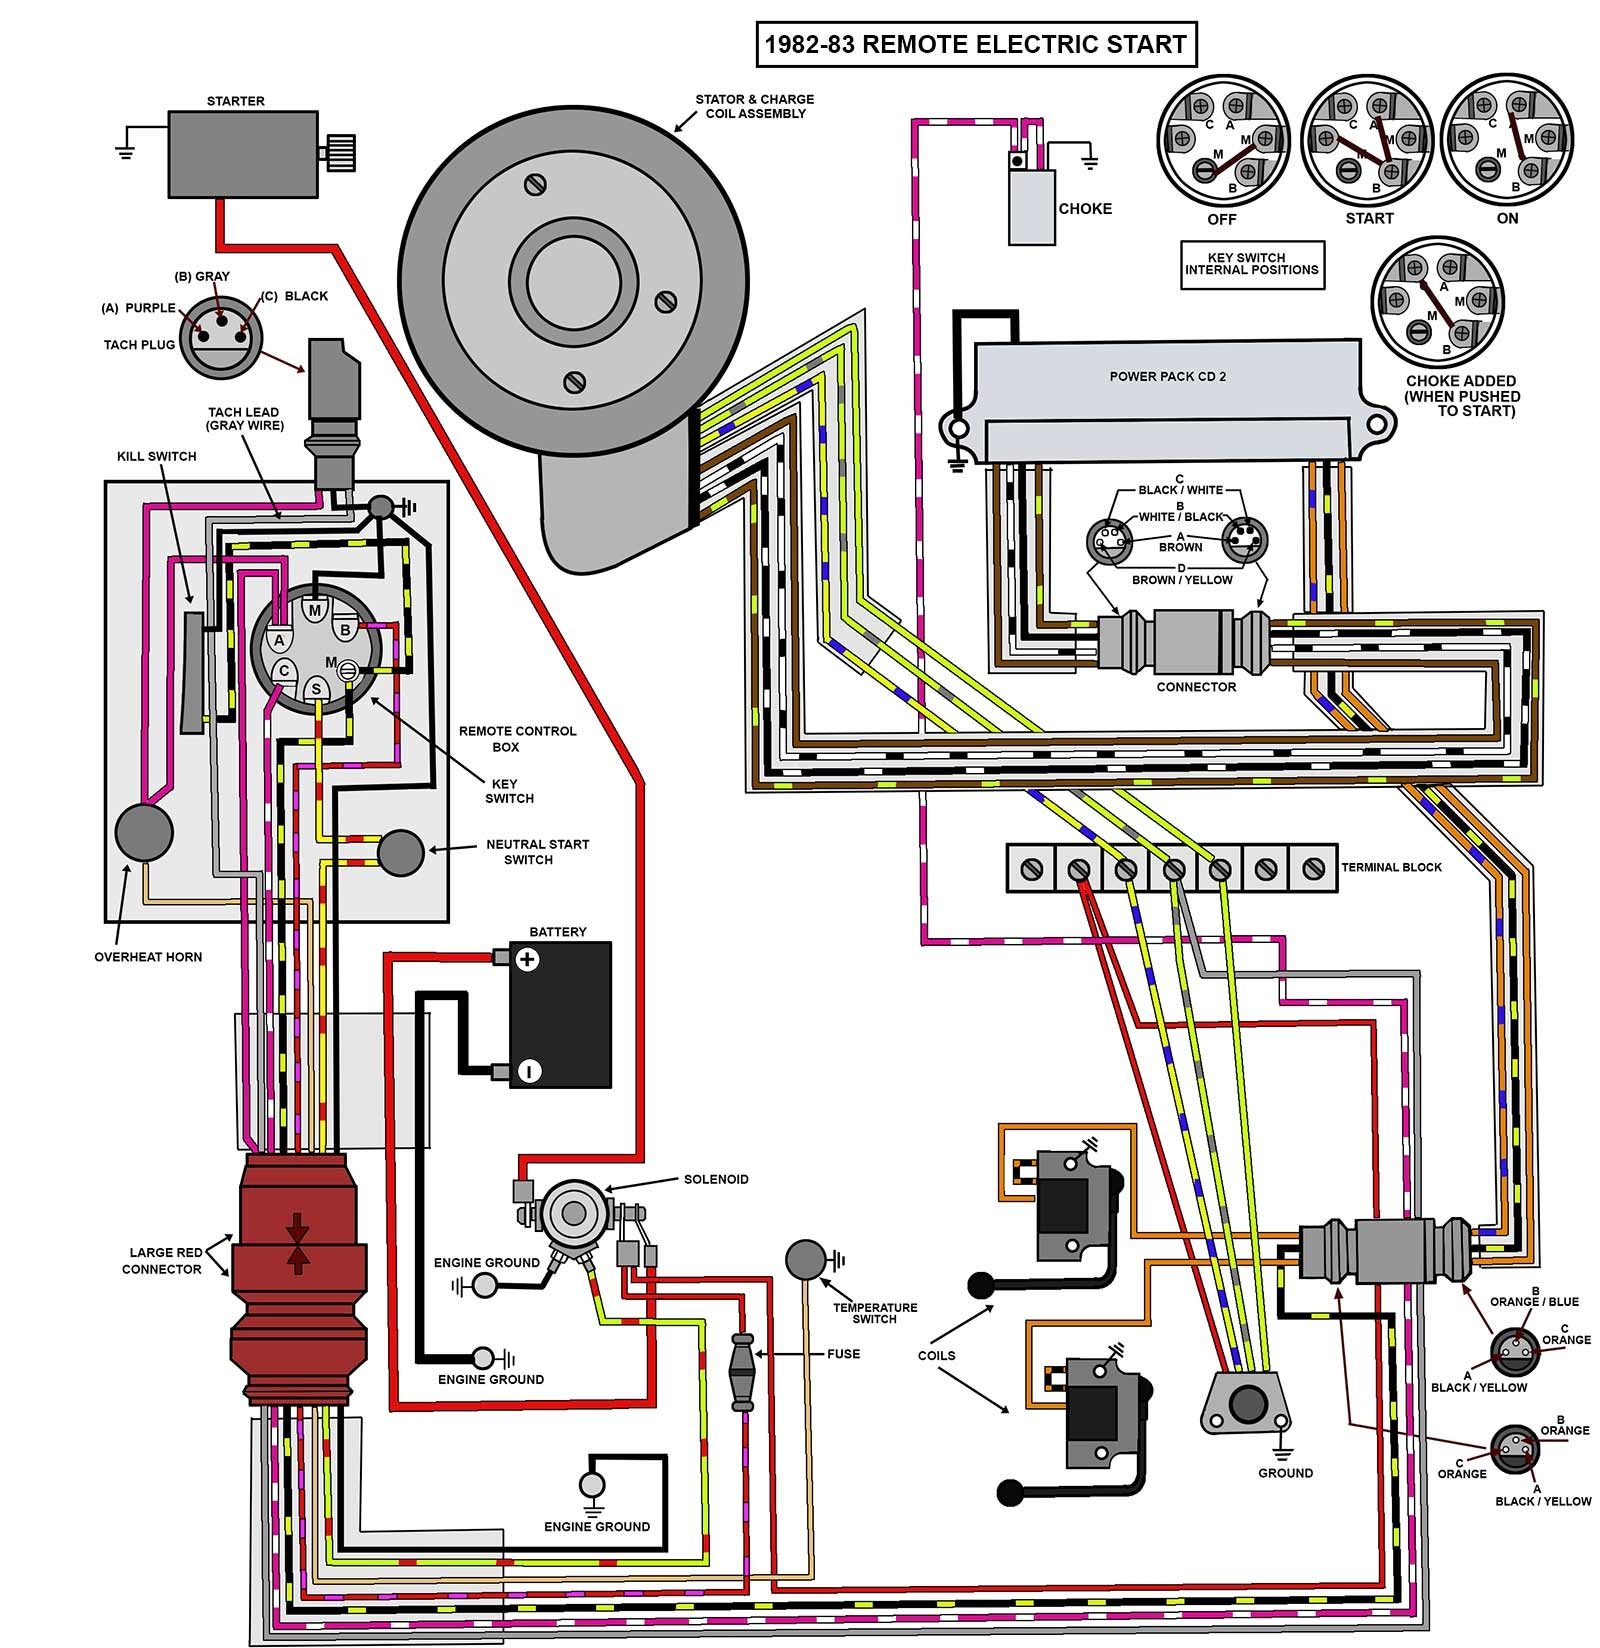 35 Hp Johnson Outboard Wiring Diagram Free Download Full